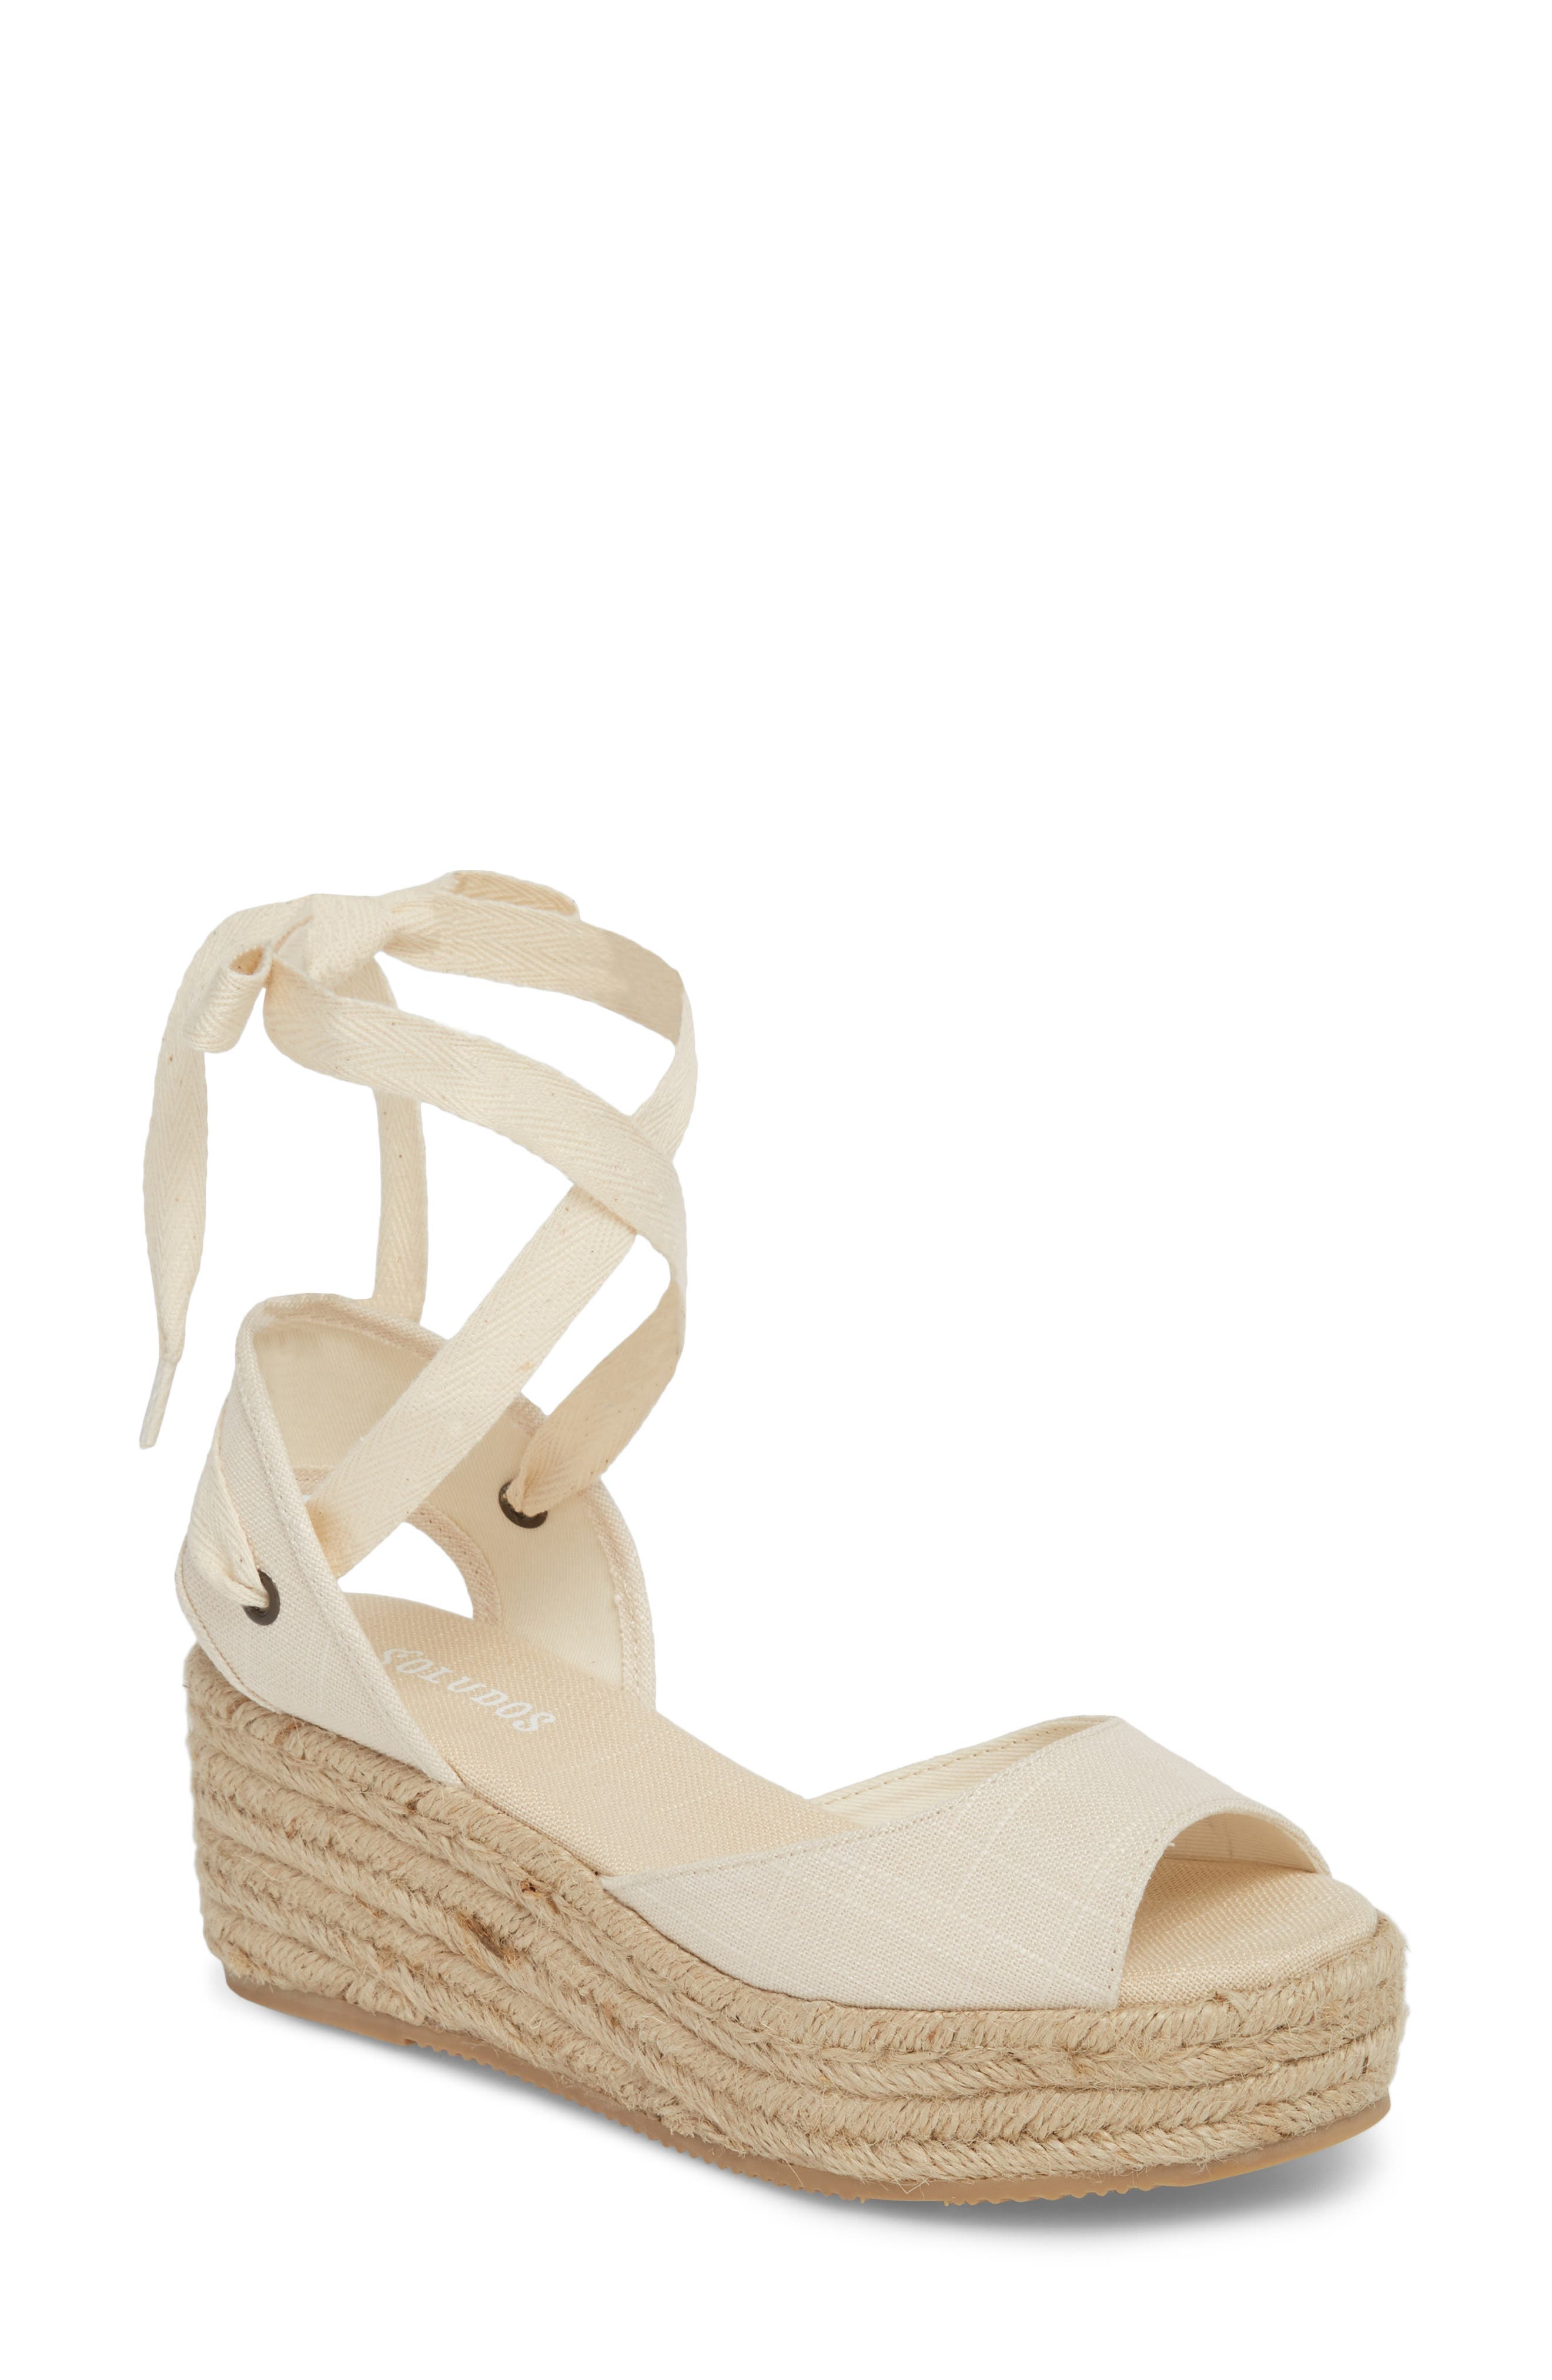 SOLUDOS Espadrille Platform Sandal, Main, color, BLUSH FABRIC